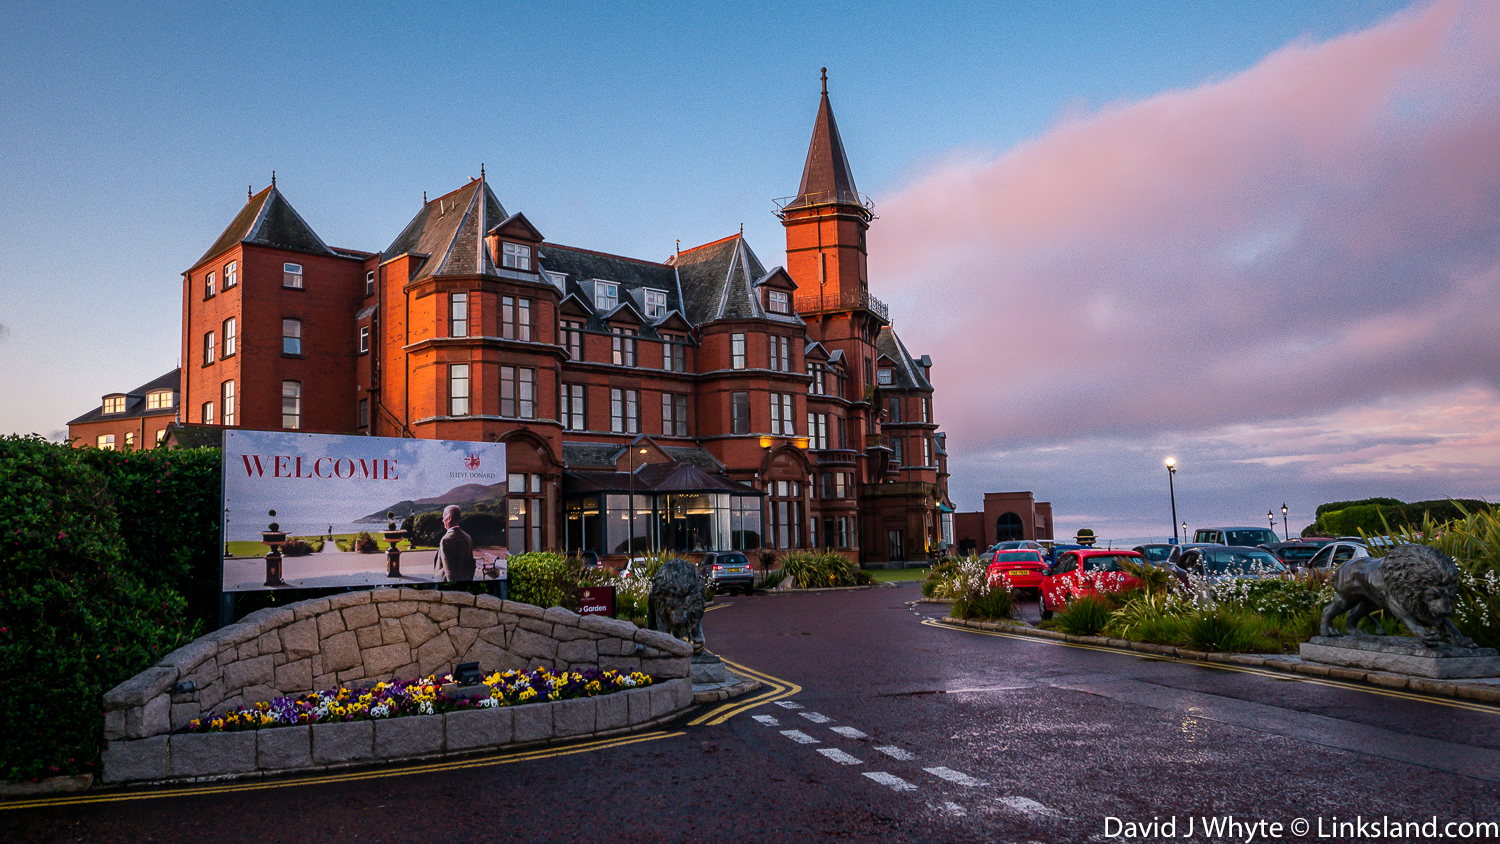 Slieve Donard Resort & Spa by Royal County Down Golf Club in Northern Ireland